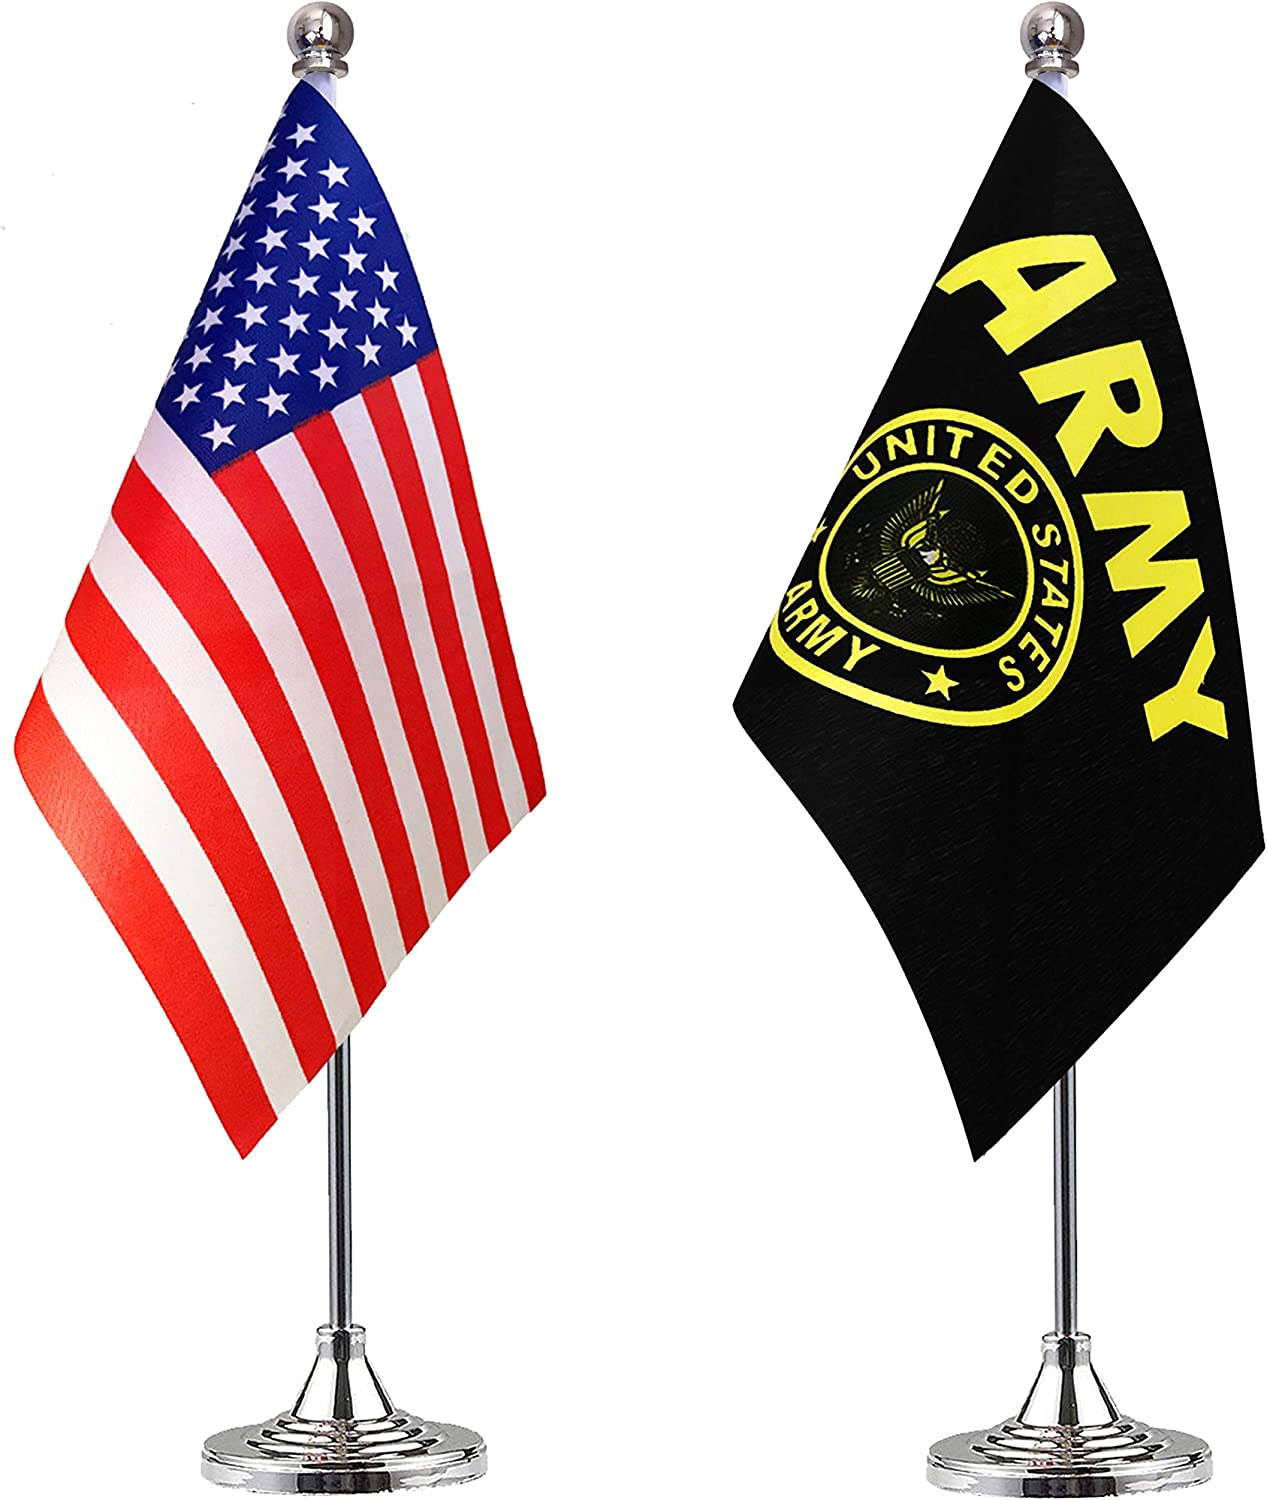 LoveVC US Army Gold Crest Desk Flag Small Mini USA Military Office Desk Table Flags with Stand Base,2 Pack